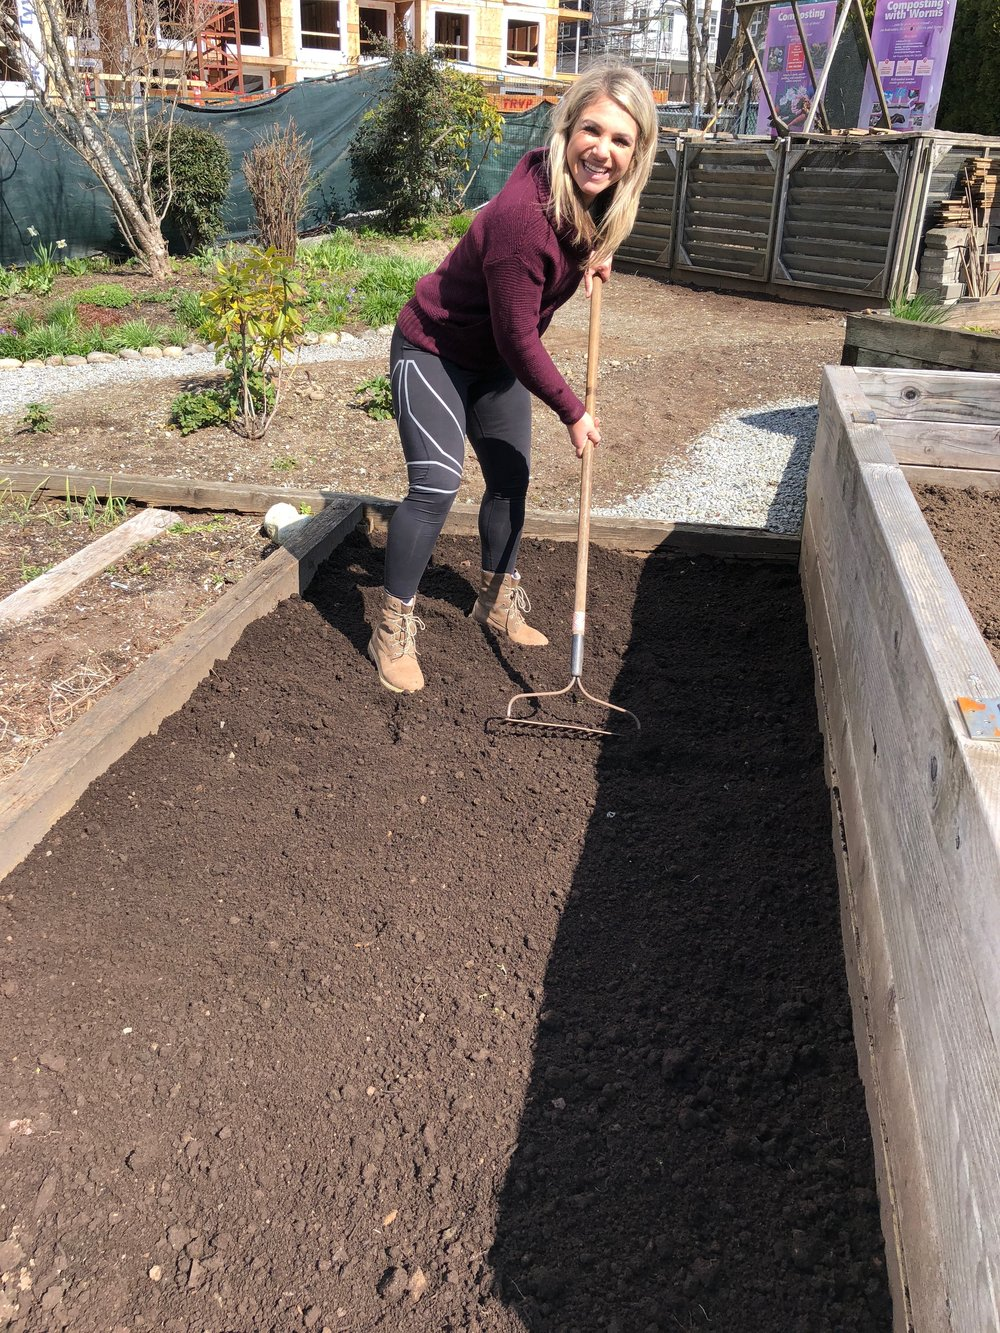 Working away in my community garden!